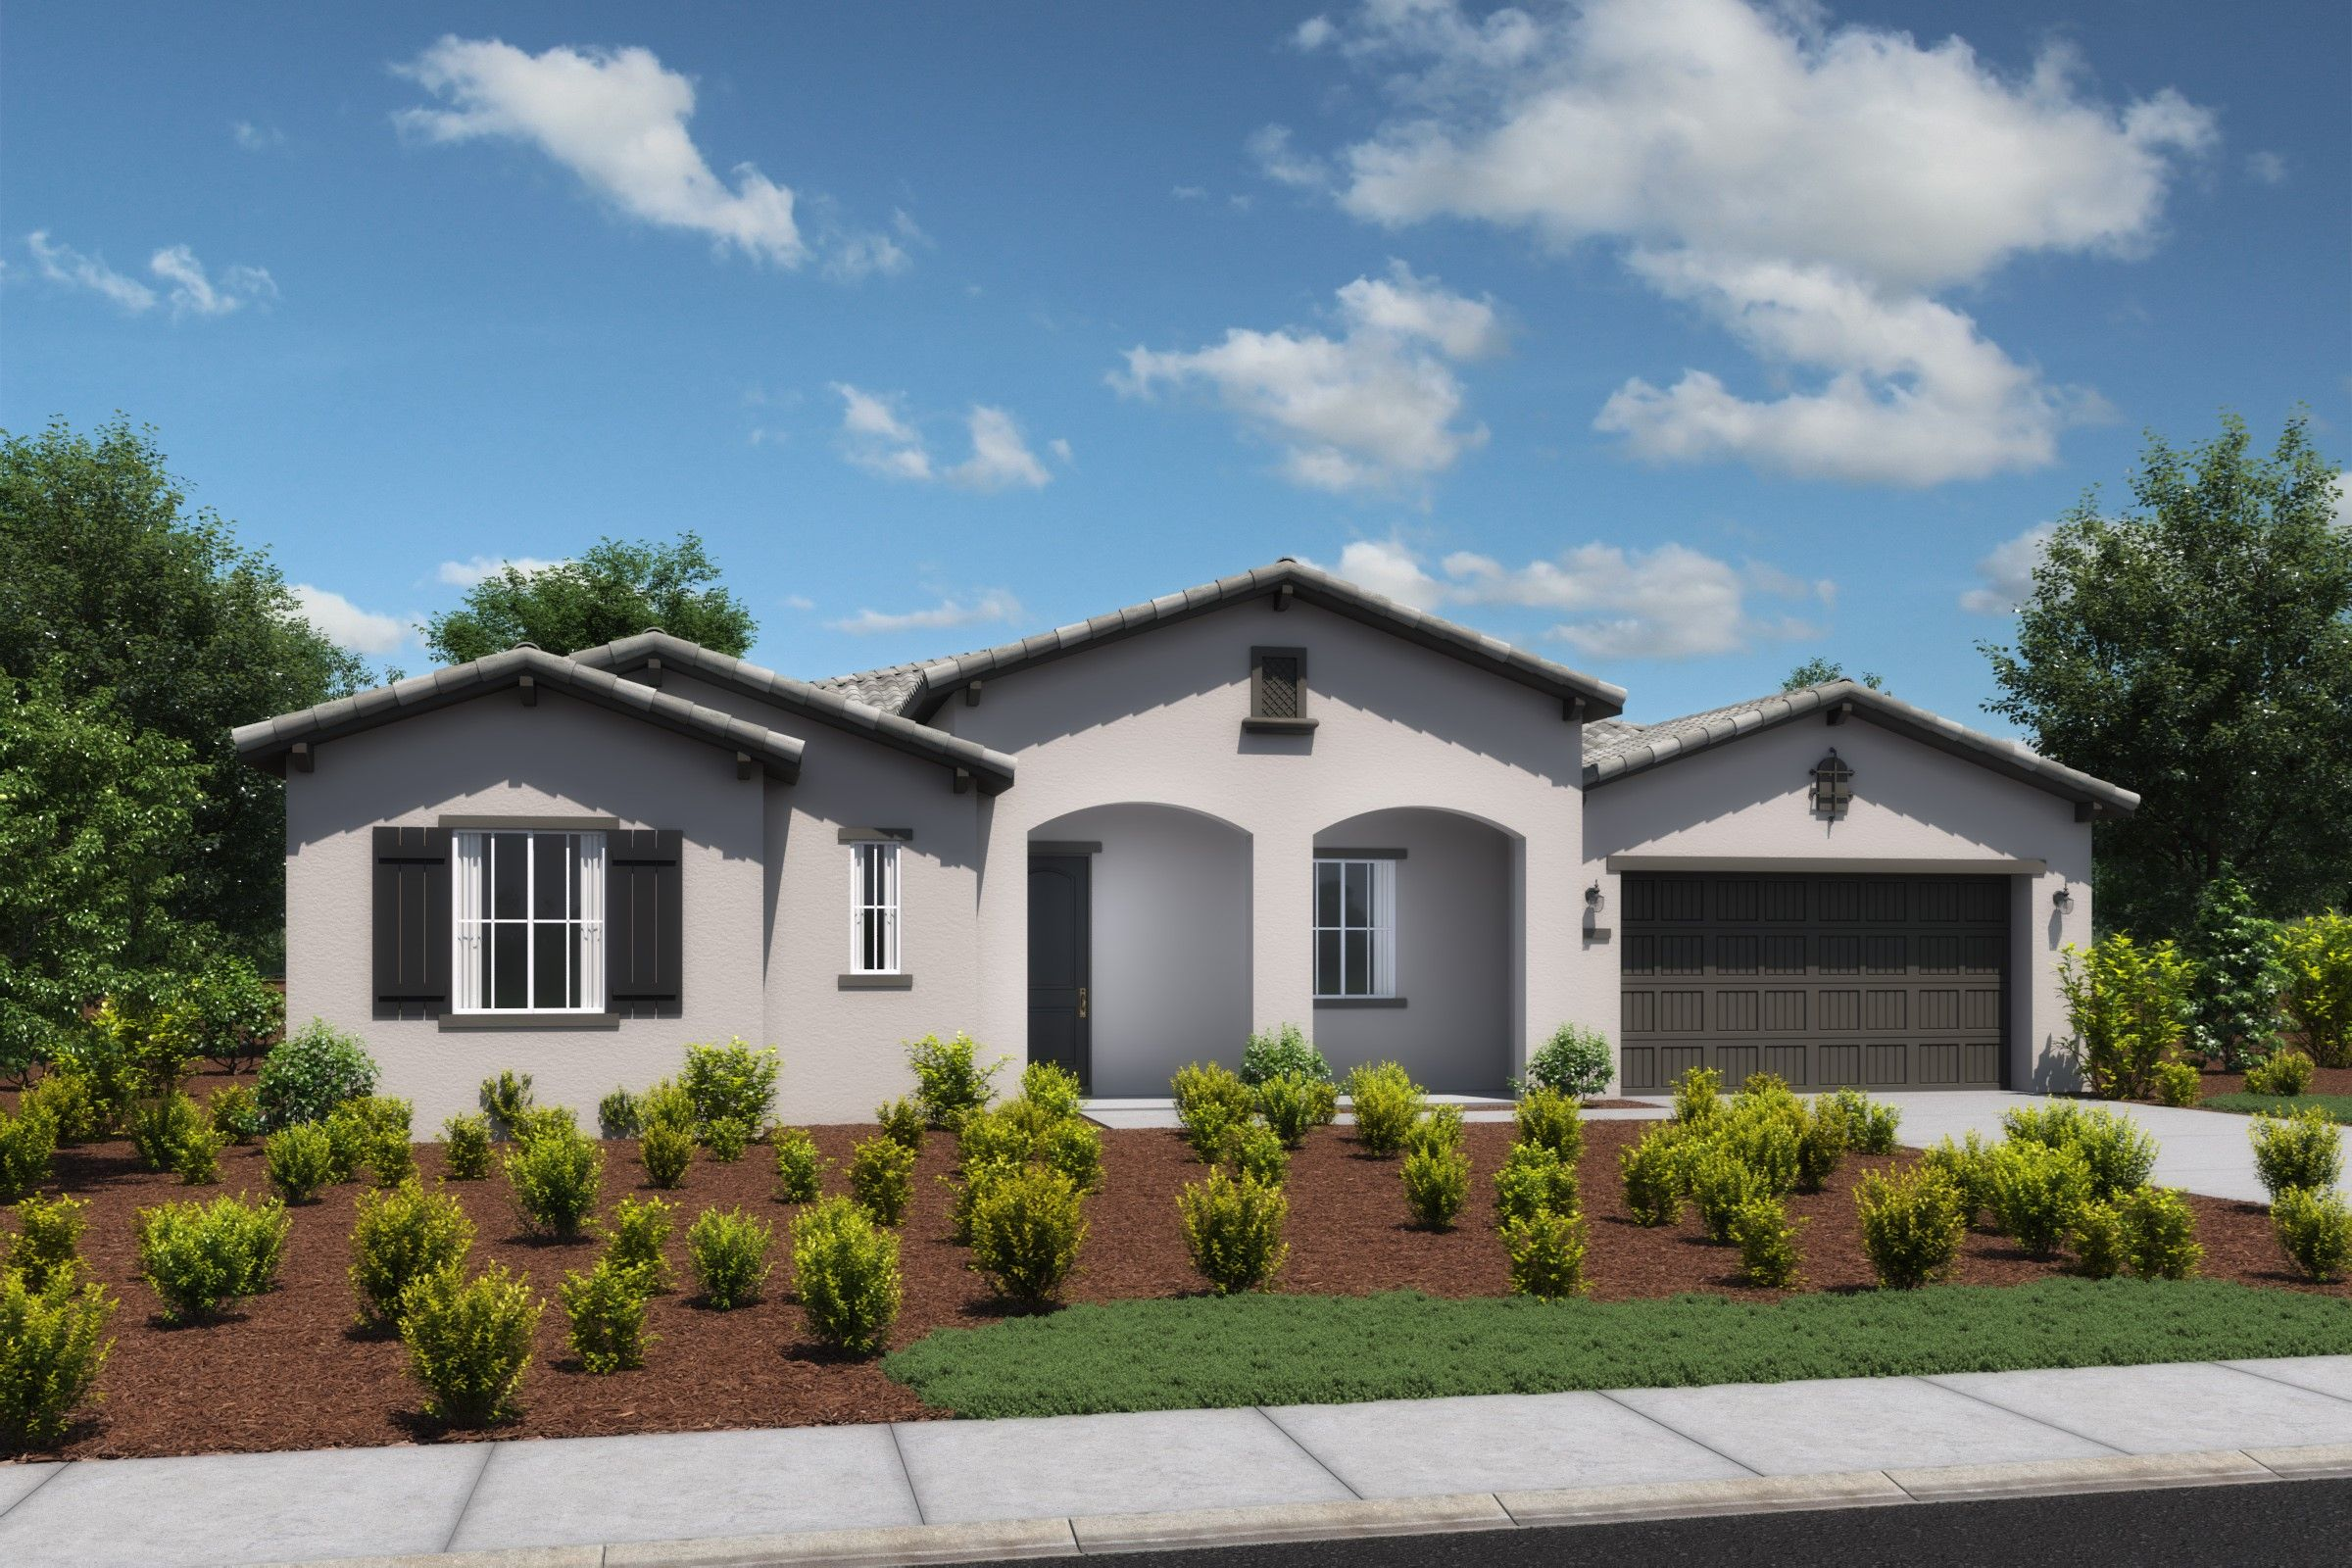 Single Family for Active at Creekside Preserve - Elizabeth Whitney Oaks Drive & Whitney Ranch Parkway Lincoln, California 95648 United States